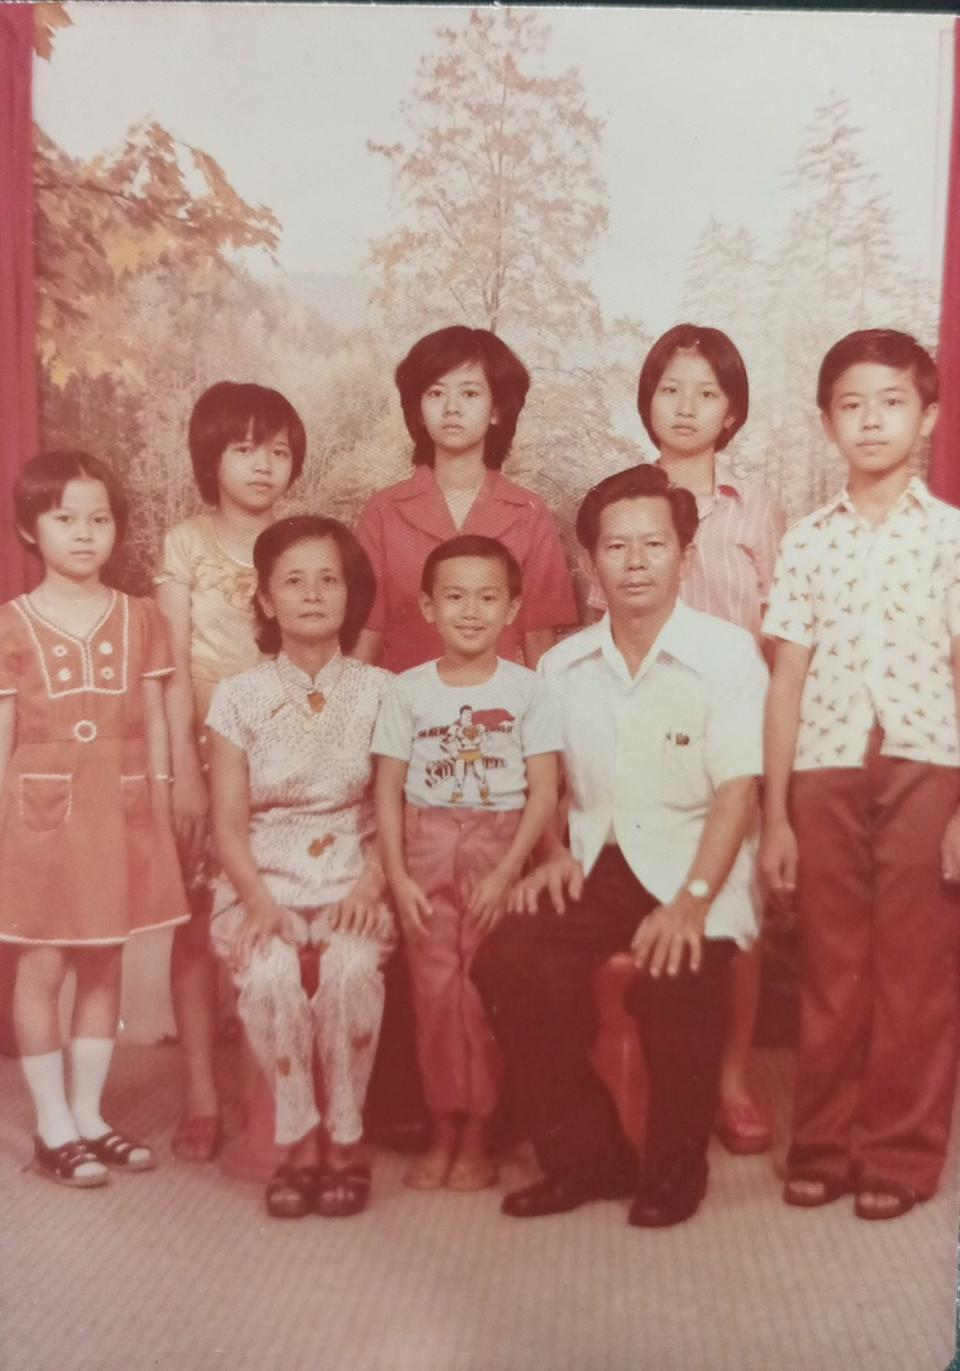 The late Tan Tiong How with his six children in 1973. (PHOTO: Ken Koh)